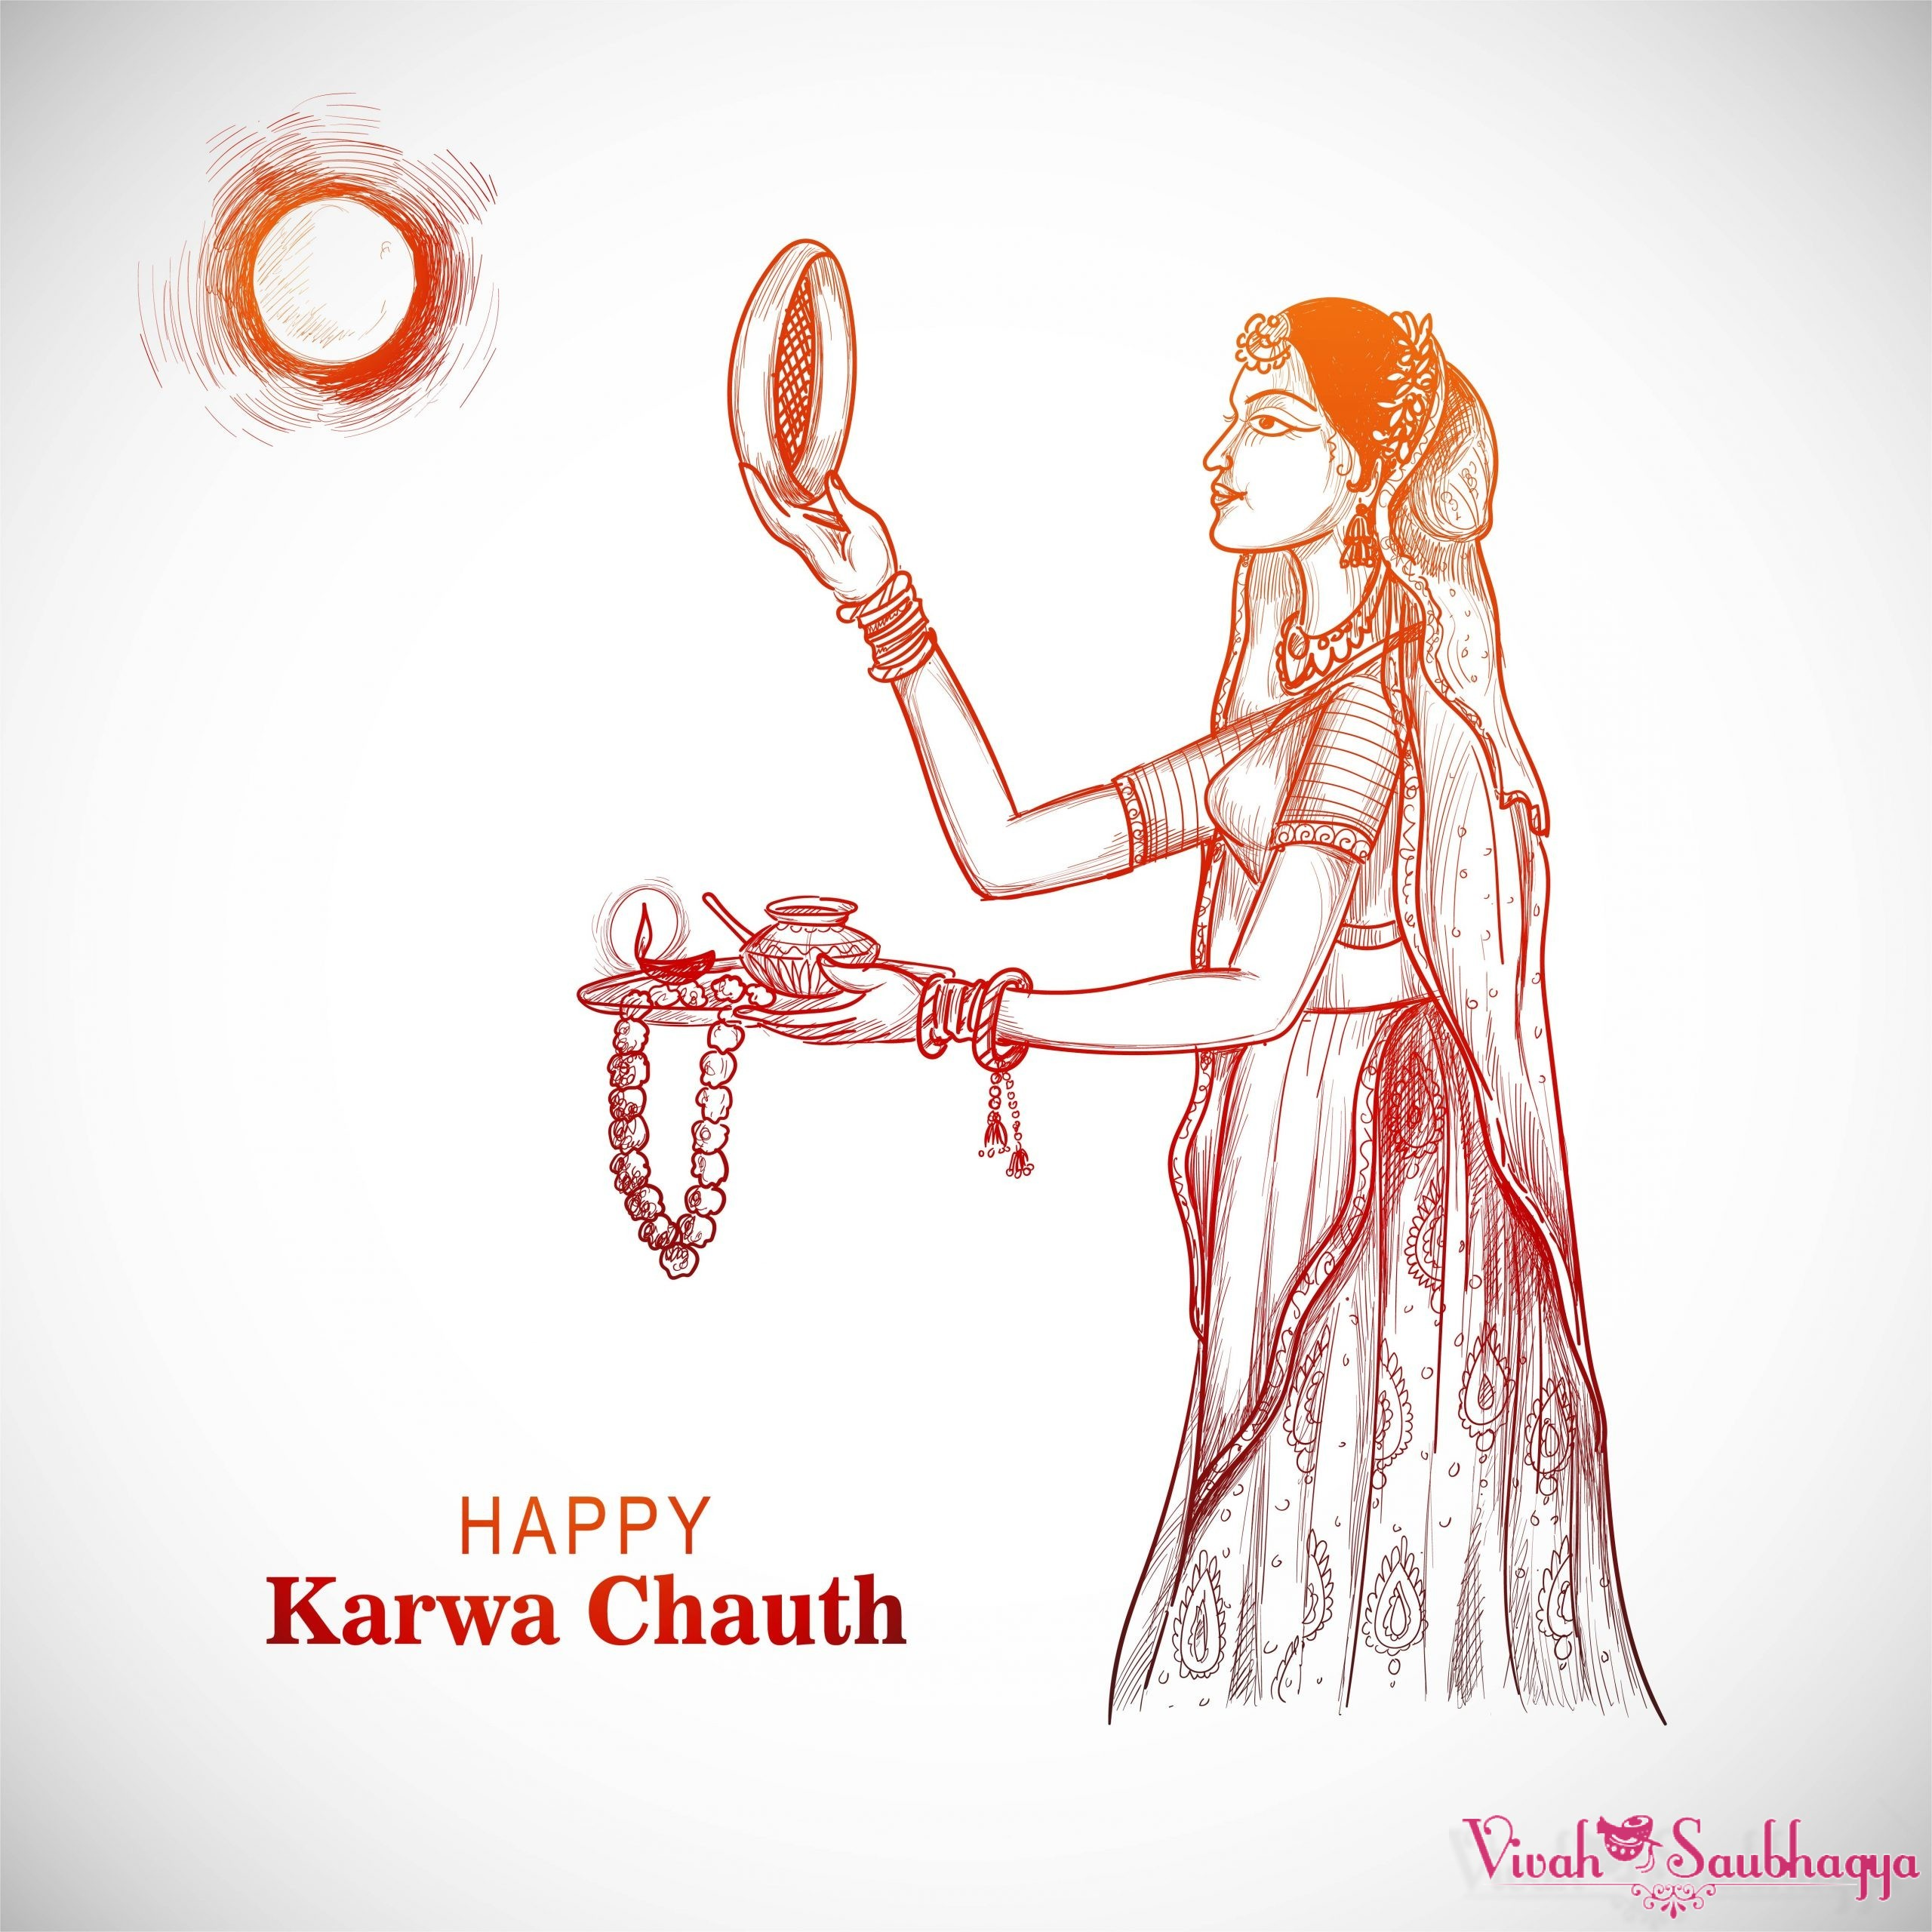 Karwa Chauth 2020 Indian Festival Make it Special